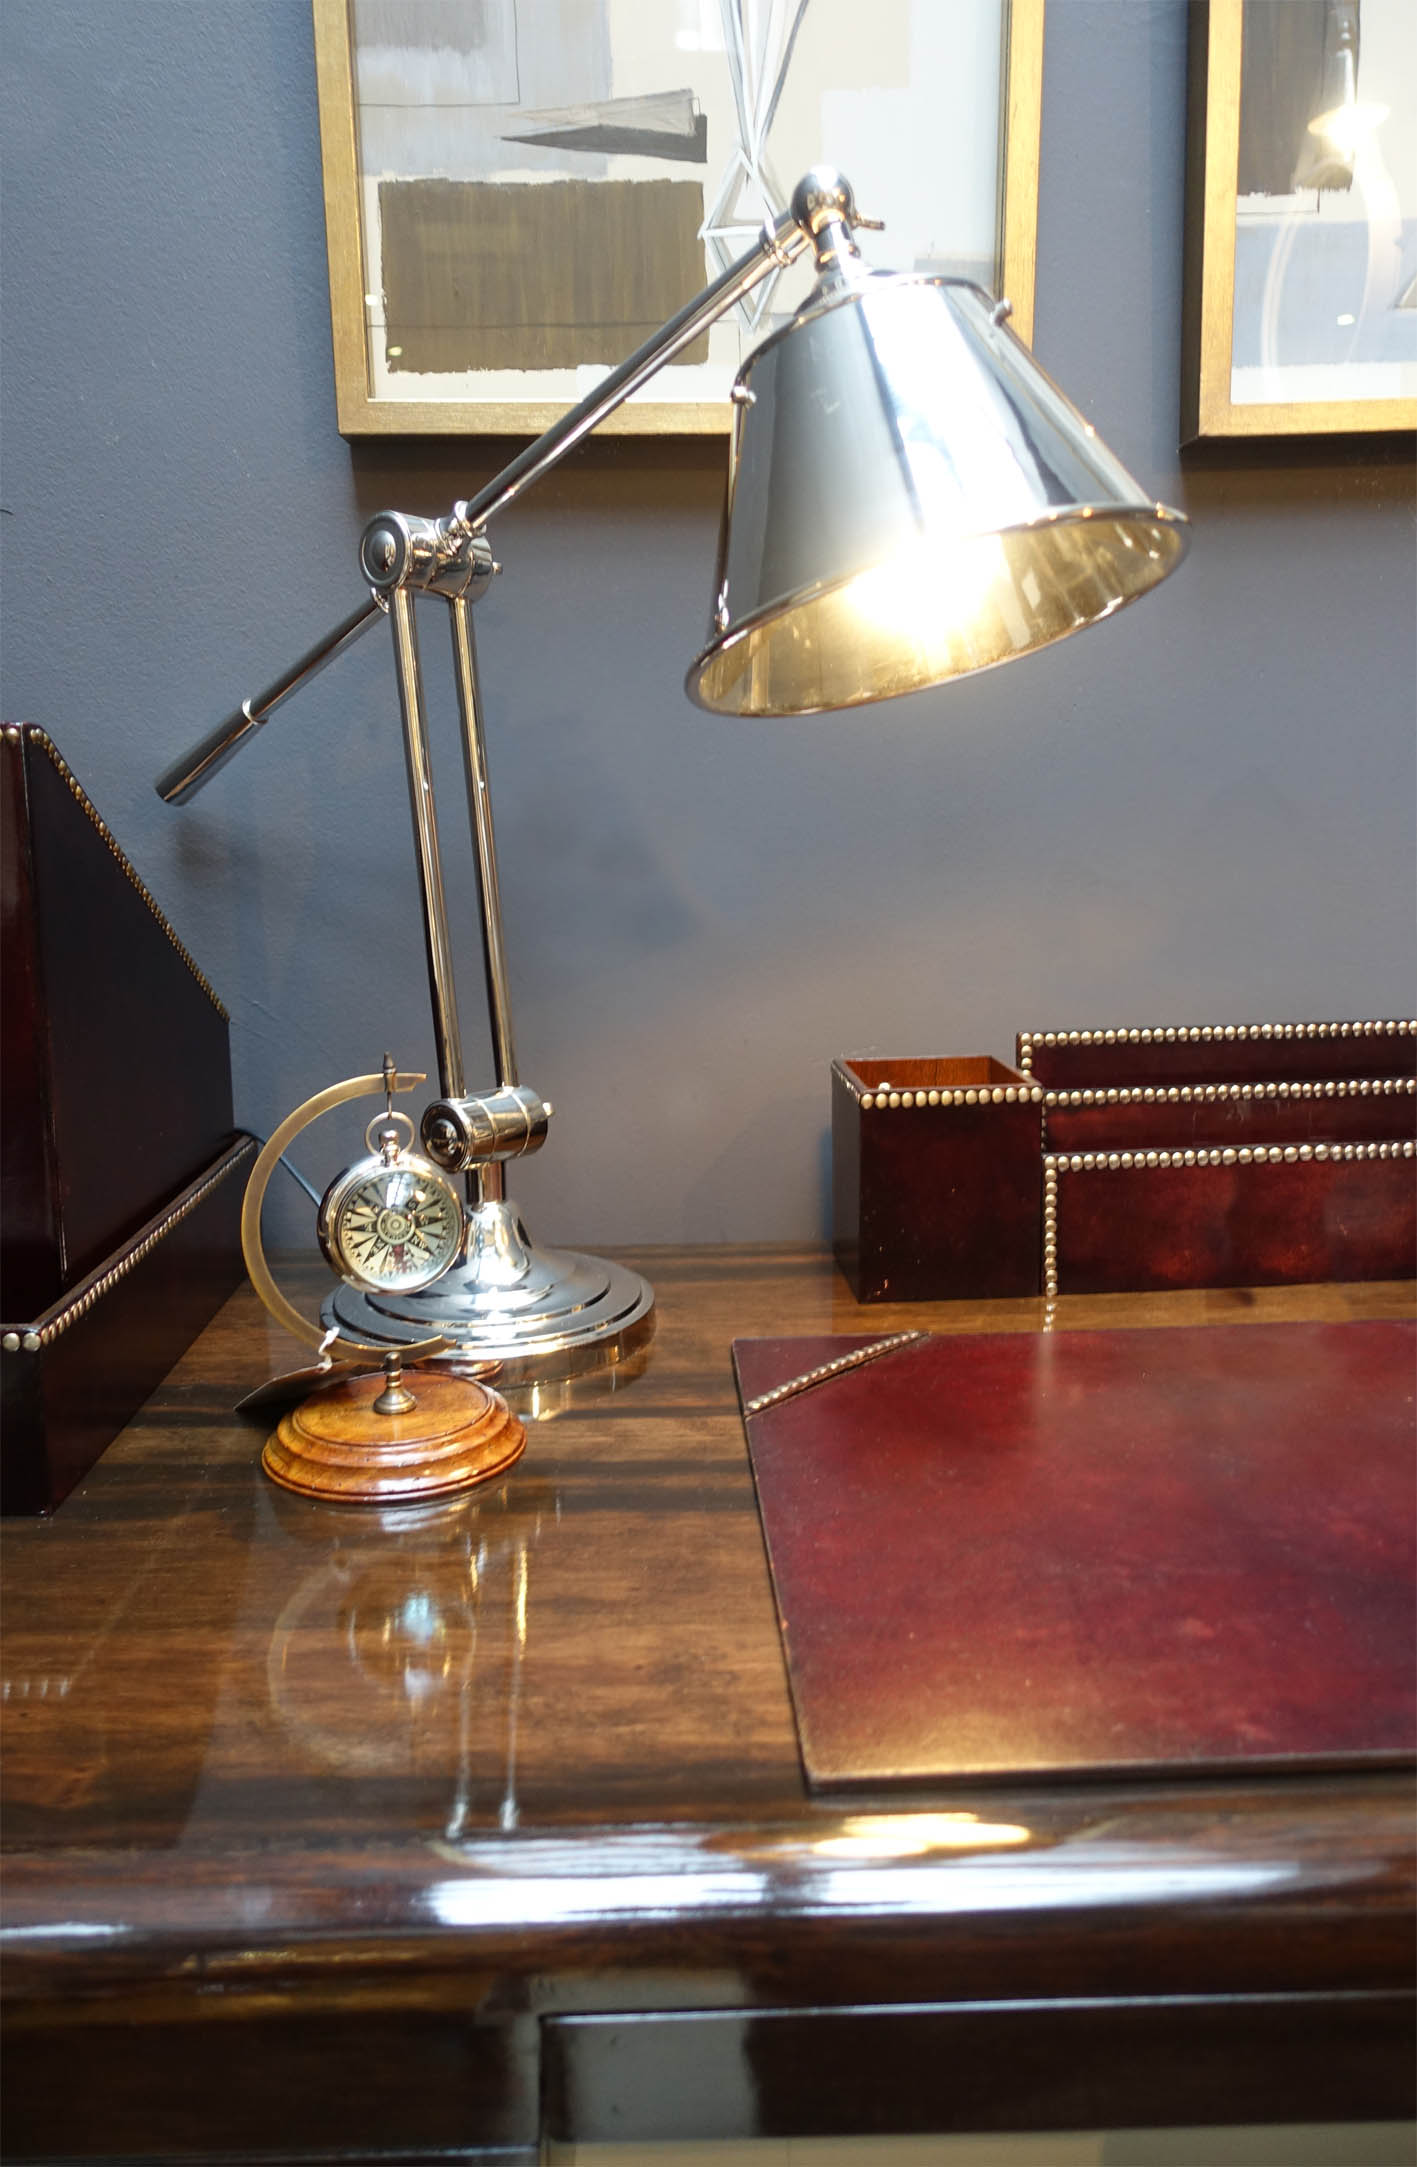 Brass, leather, wood and chrome sit perfectly together in Mufti's in-store room sets.